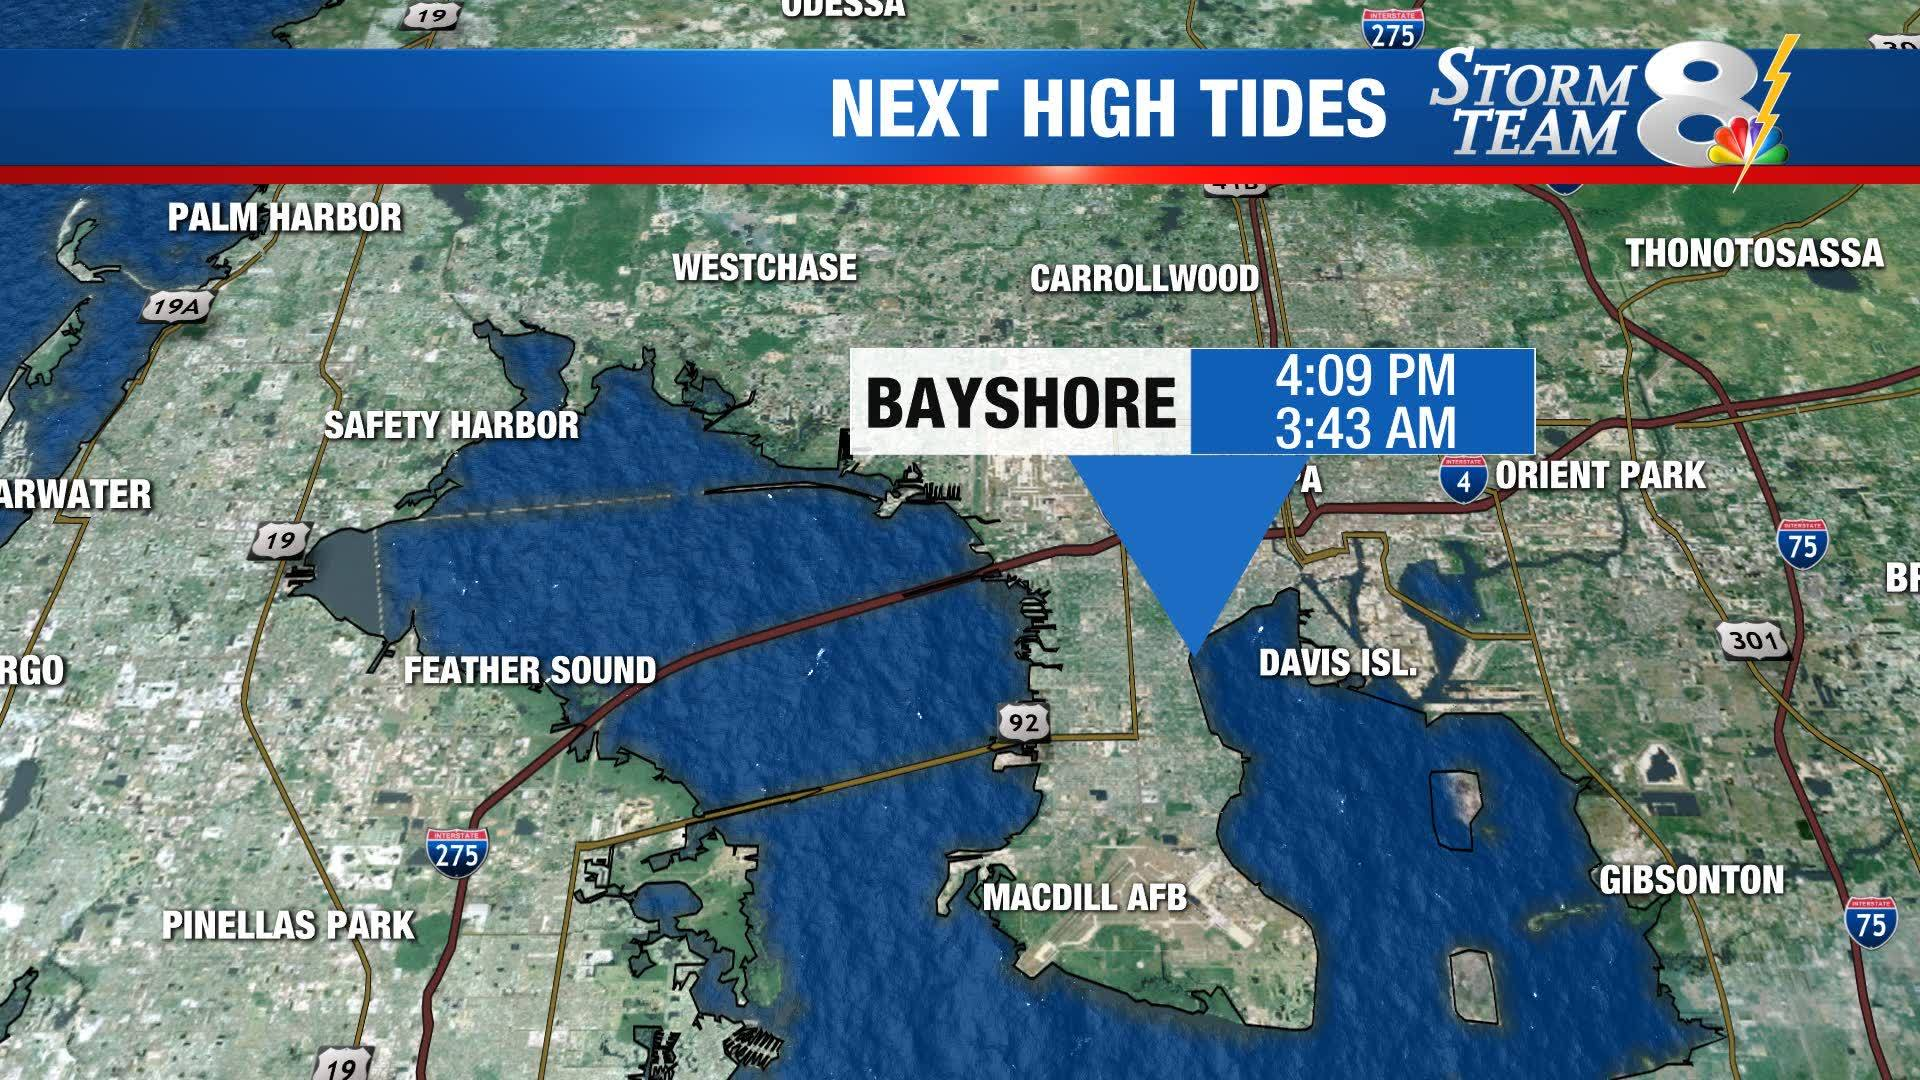 High tide times in Tampa Bay